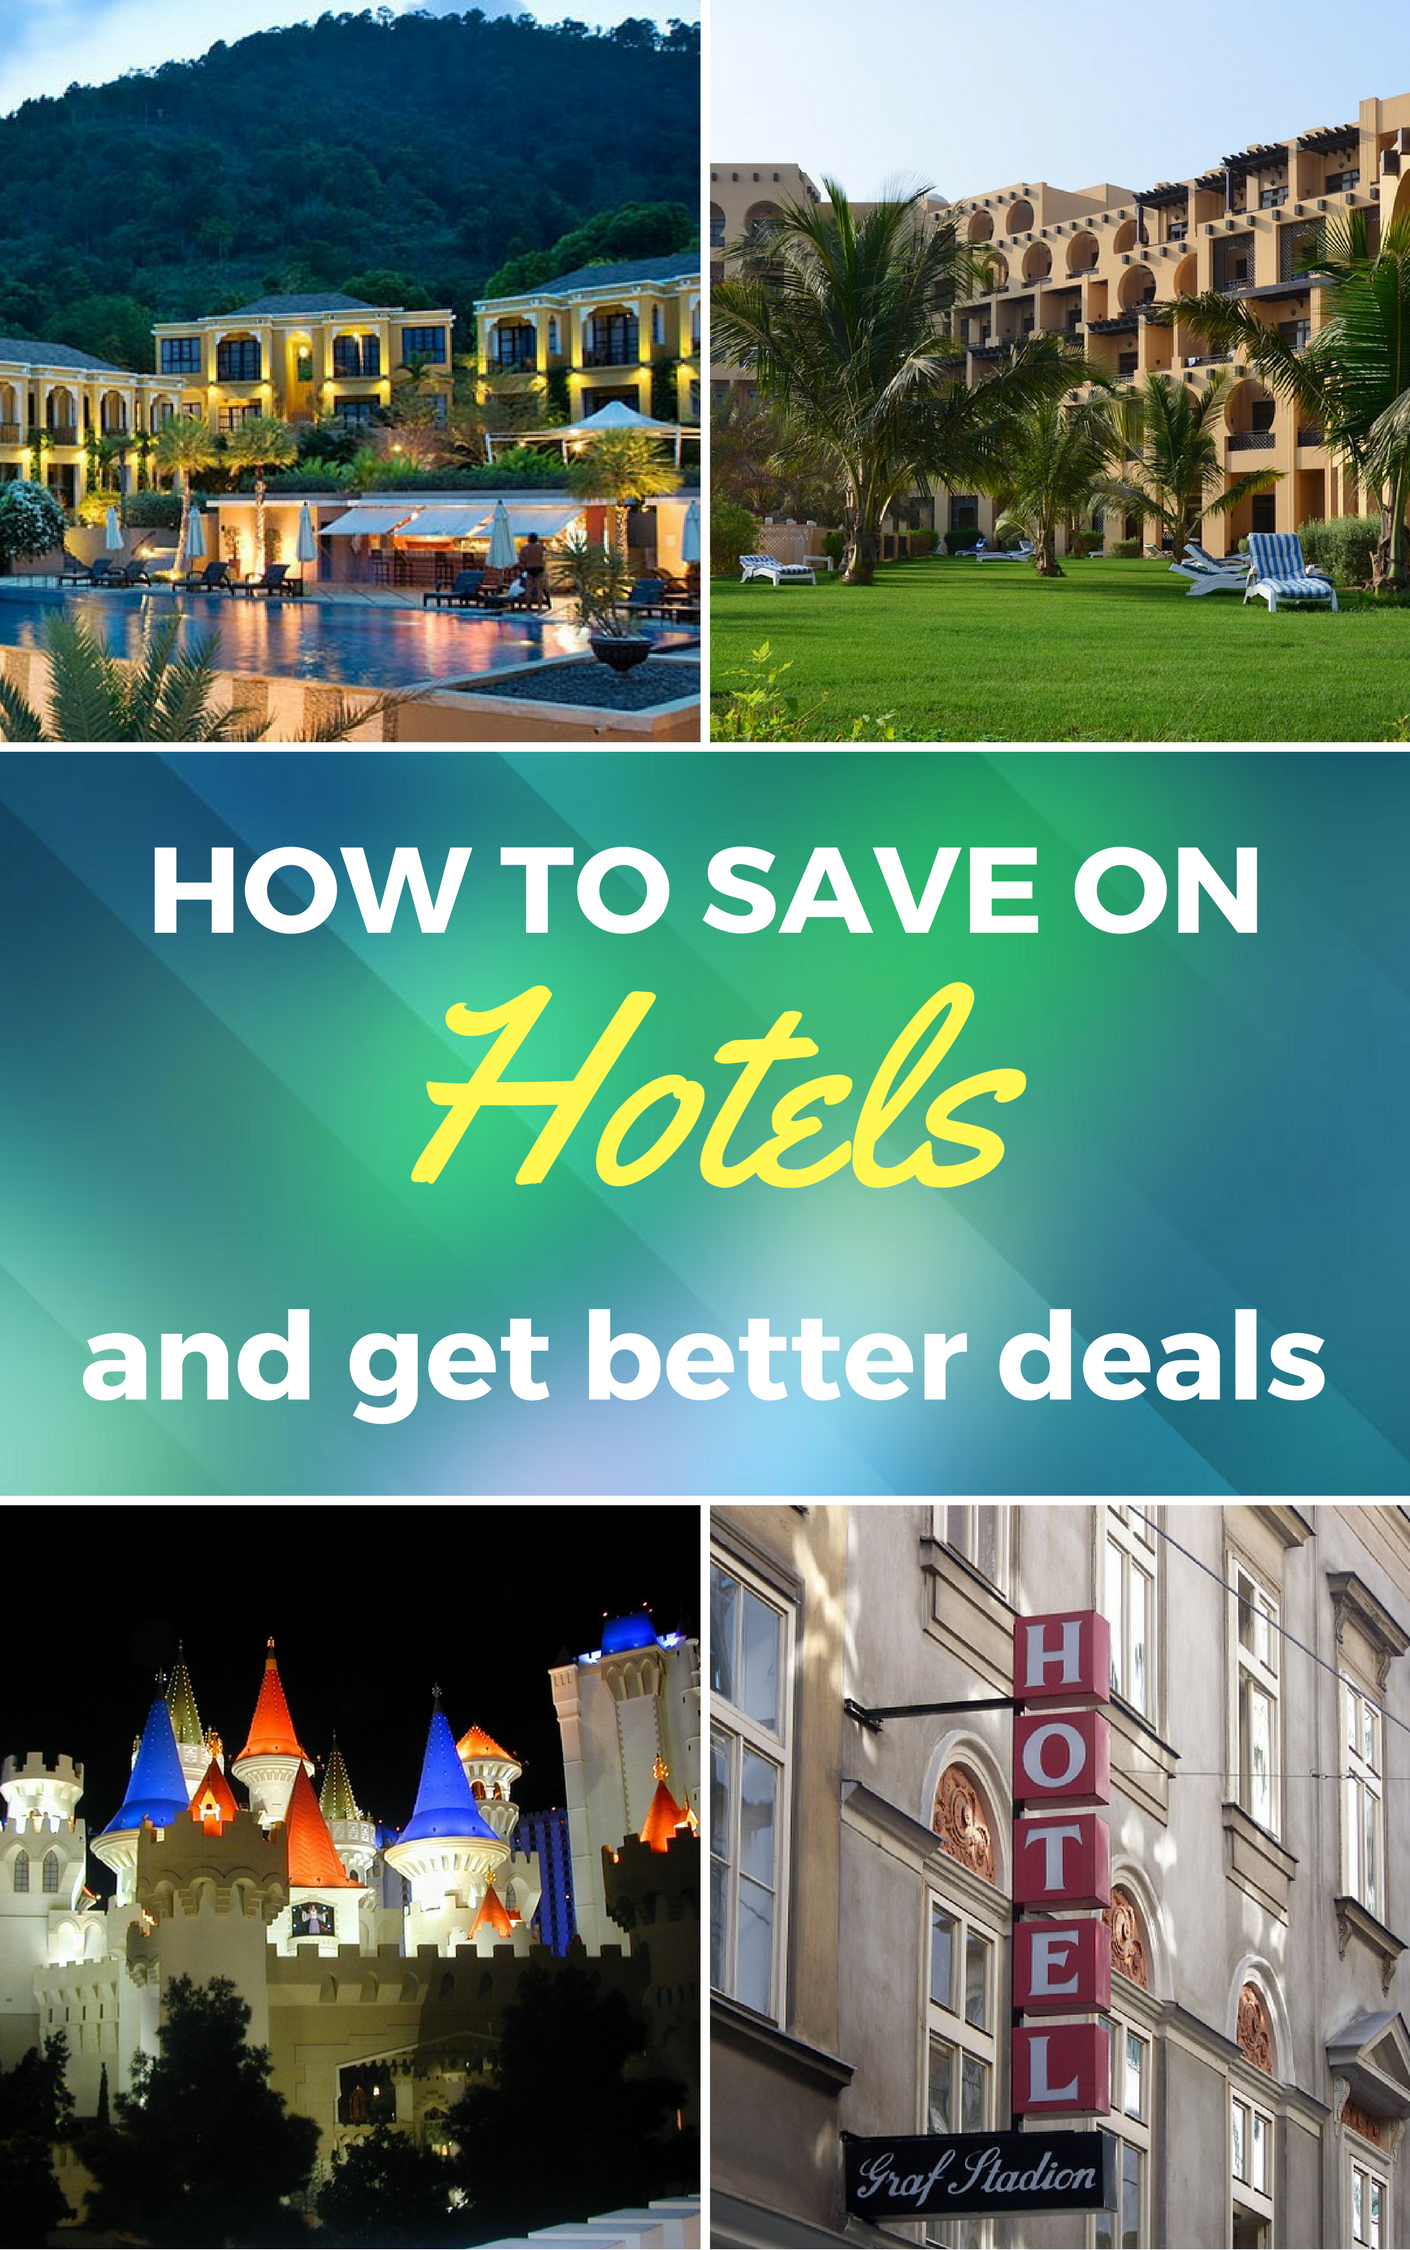 Where To Find Cheapest Hotels How To Get Hotel Discounts And Negotiate Better Rates Cheap